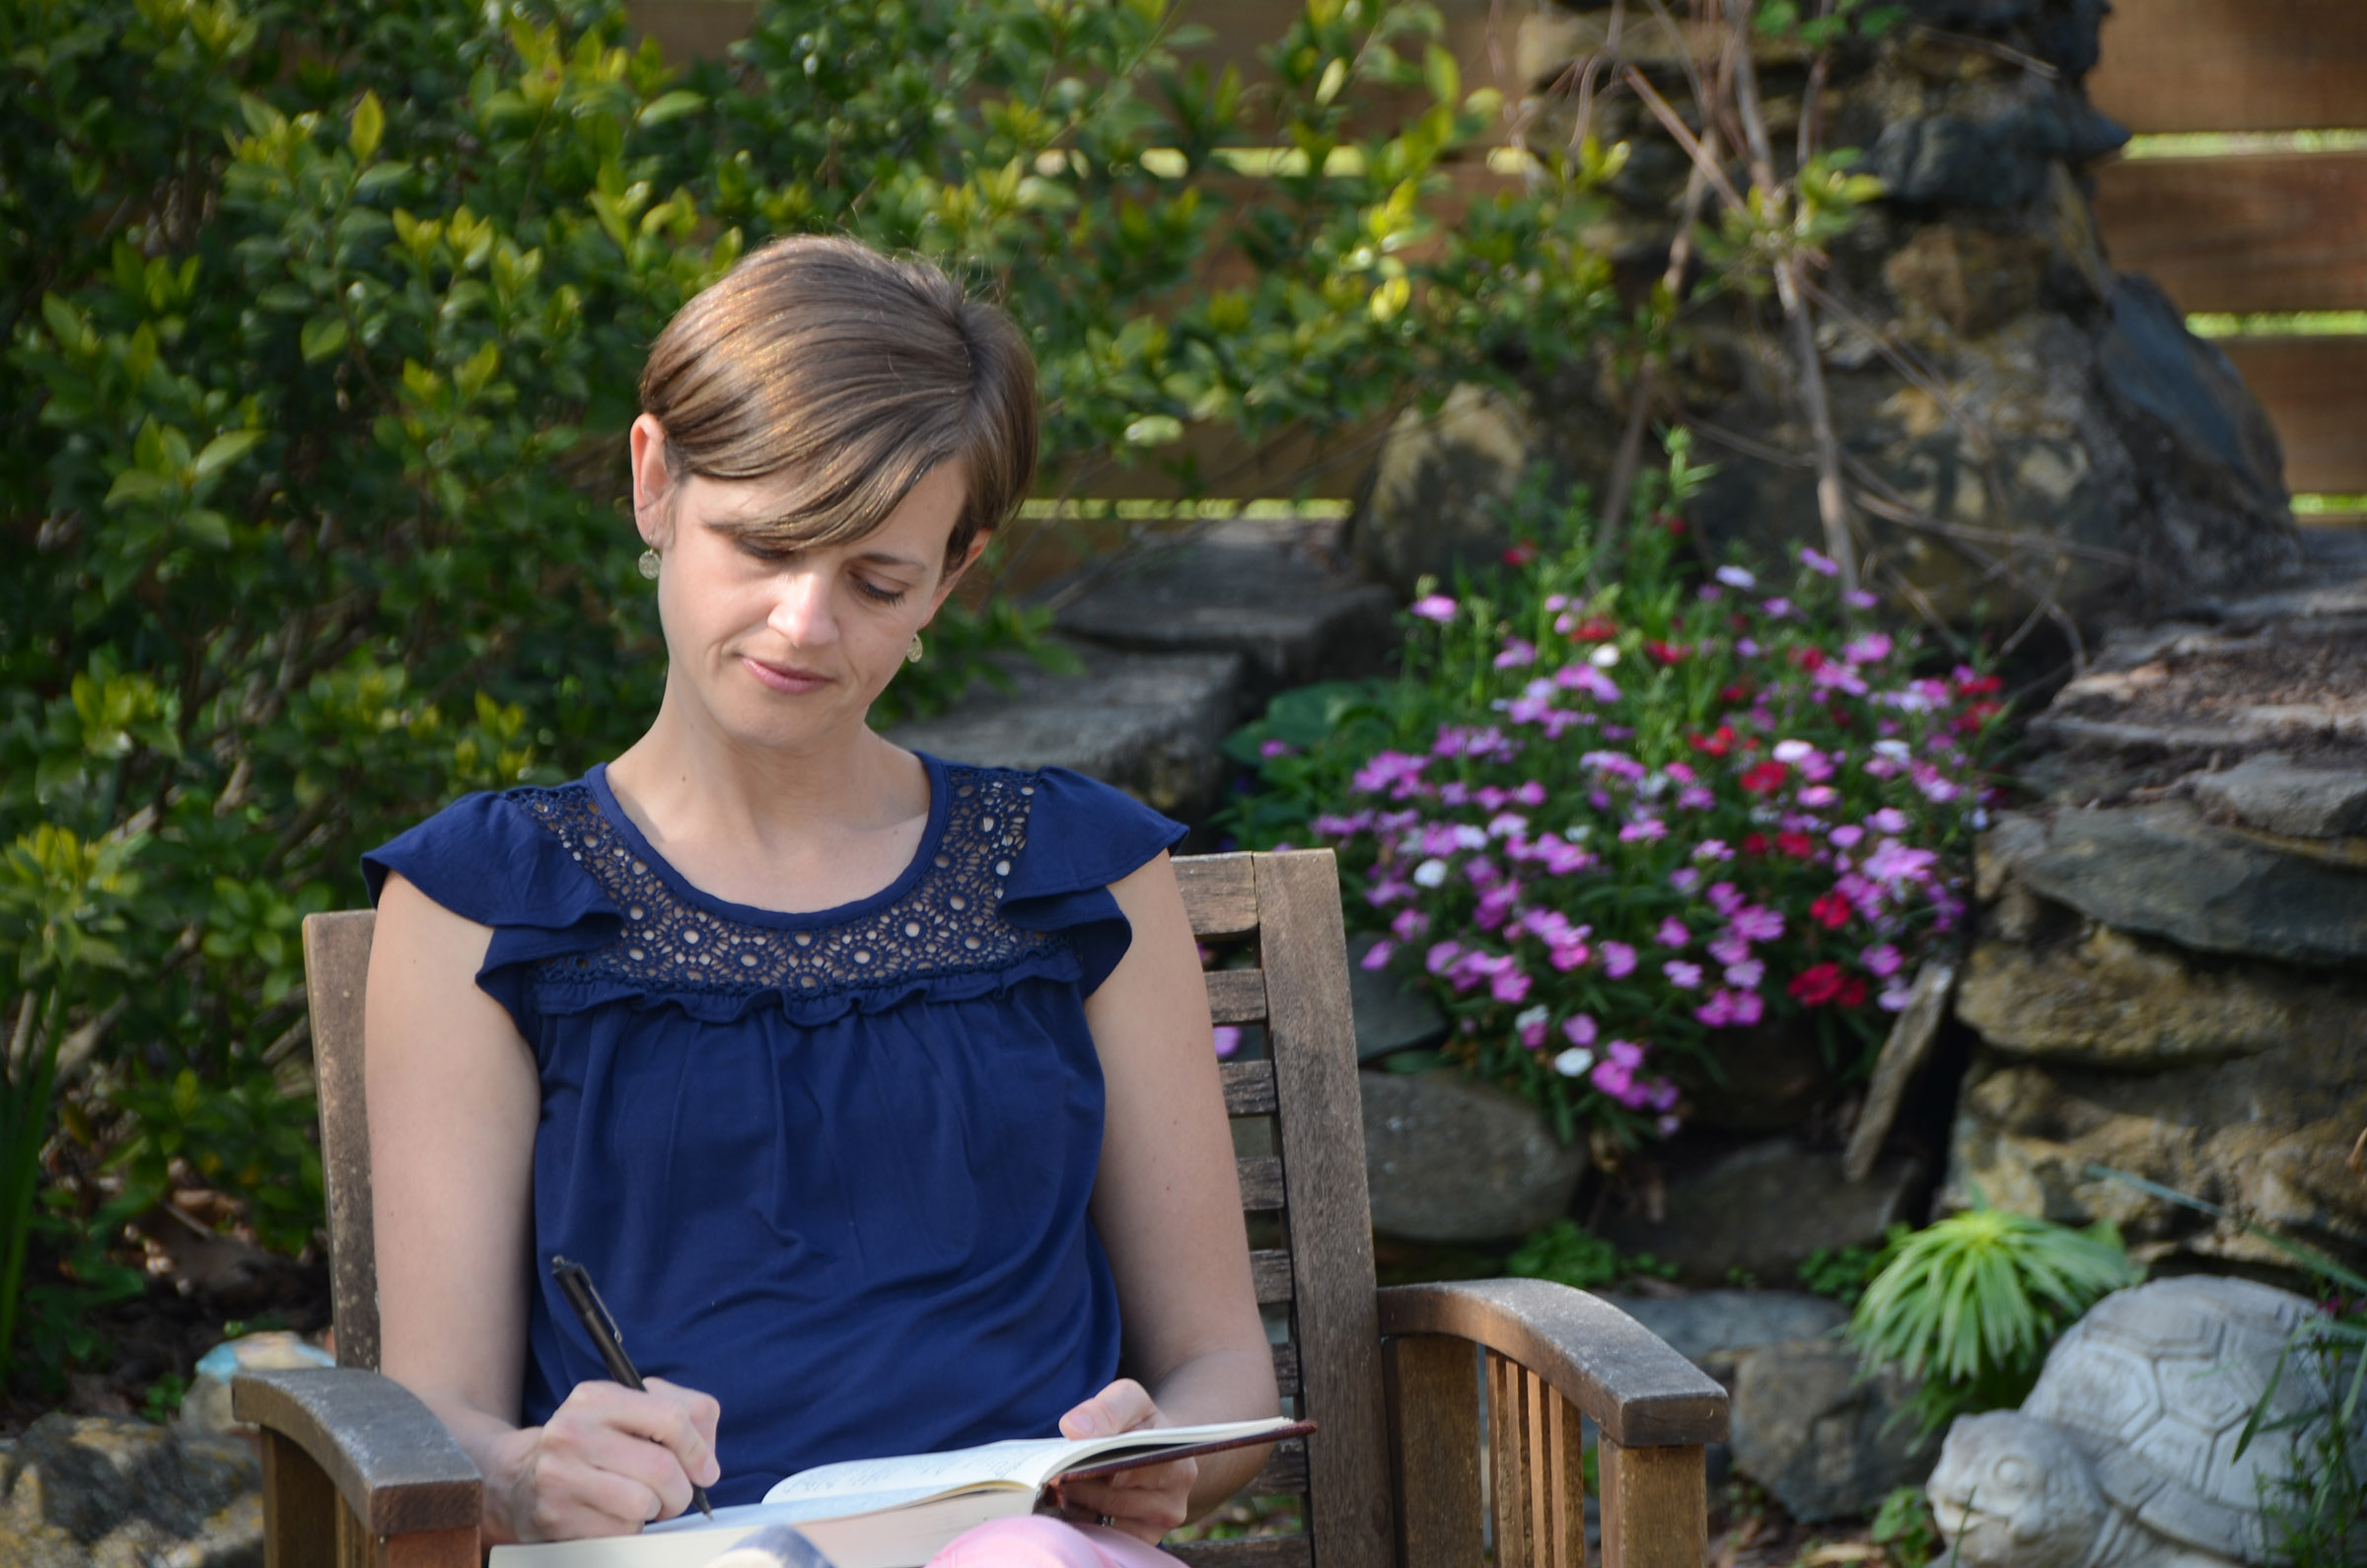 A woman sits on a garden chair writing in a book